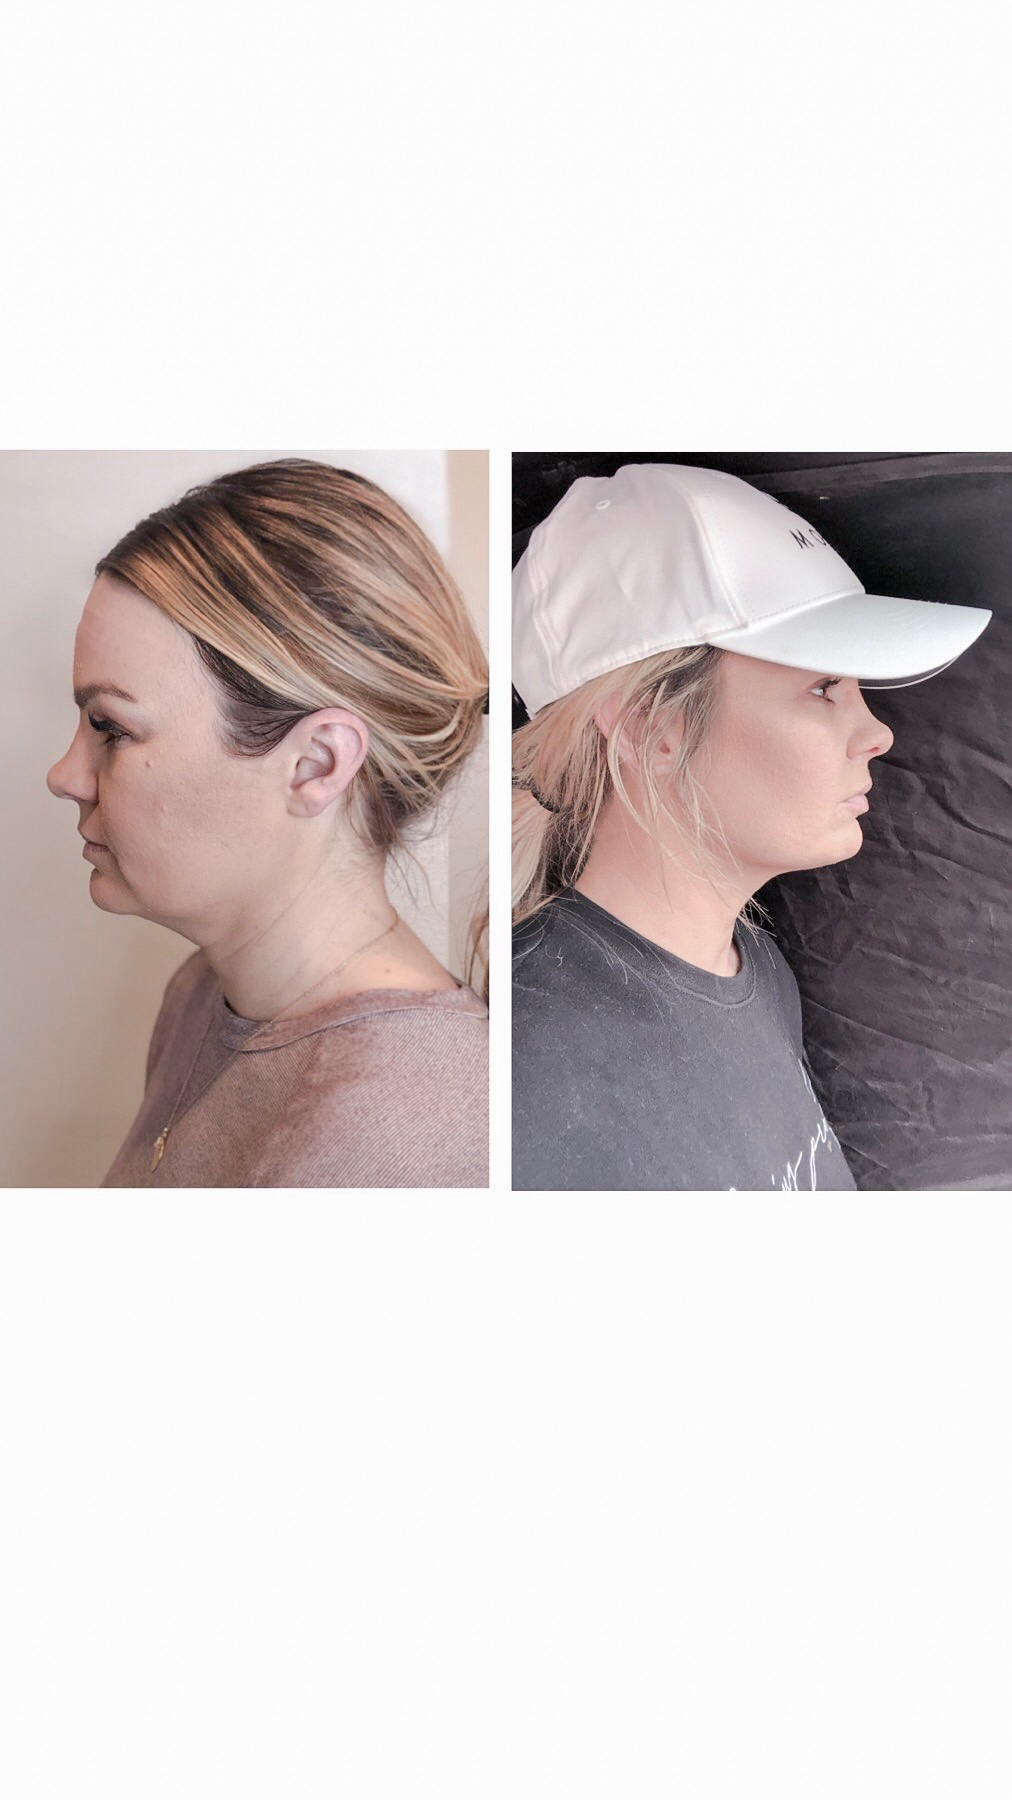 LEFT- BEFORE KYBELLA. | RIGHT- 7 WEEKS POST KYBELLA